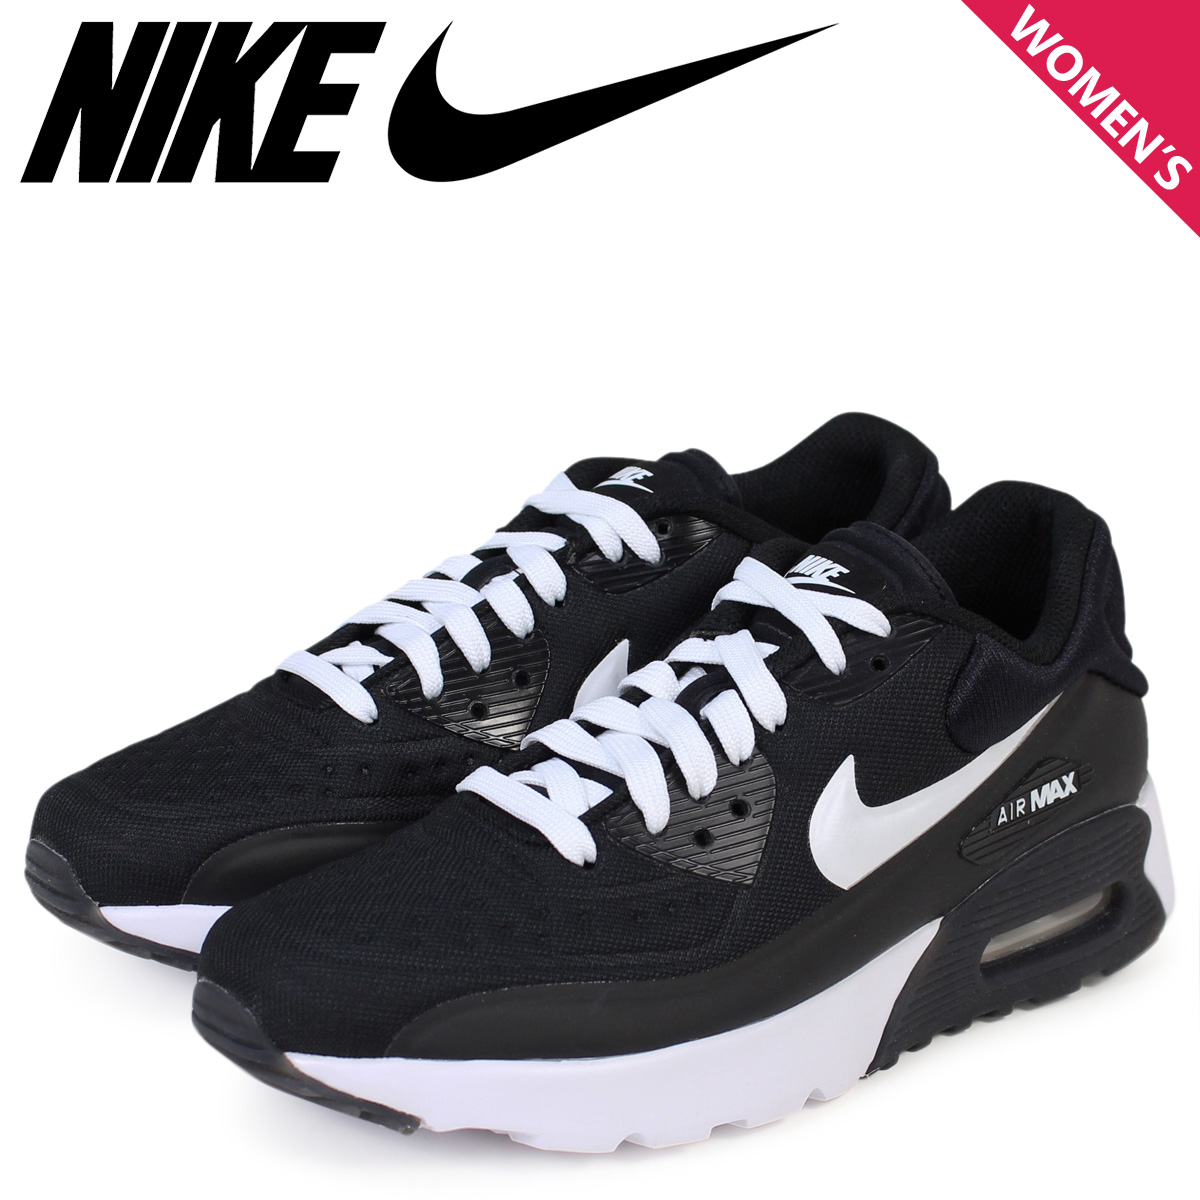 best service 87569 8ec1d Nike Air Max Womens NIKE sneakers AIR MAX 90 ULTRA SE GS Air Max 844599-001  black shoe [11 / 26 new in stock]